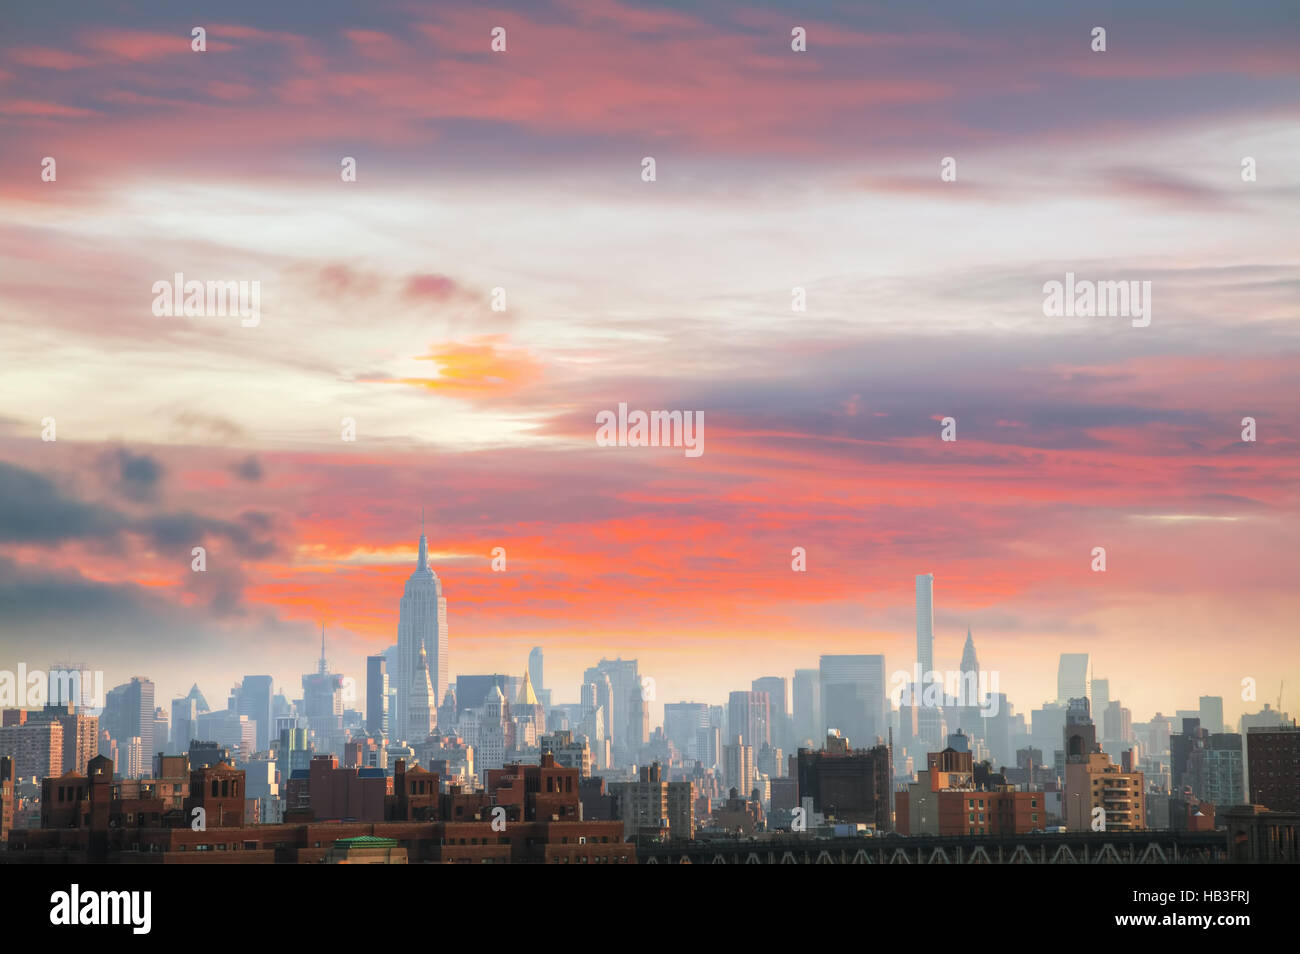 New York City cityscape - Stock Image